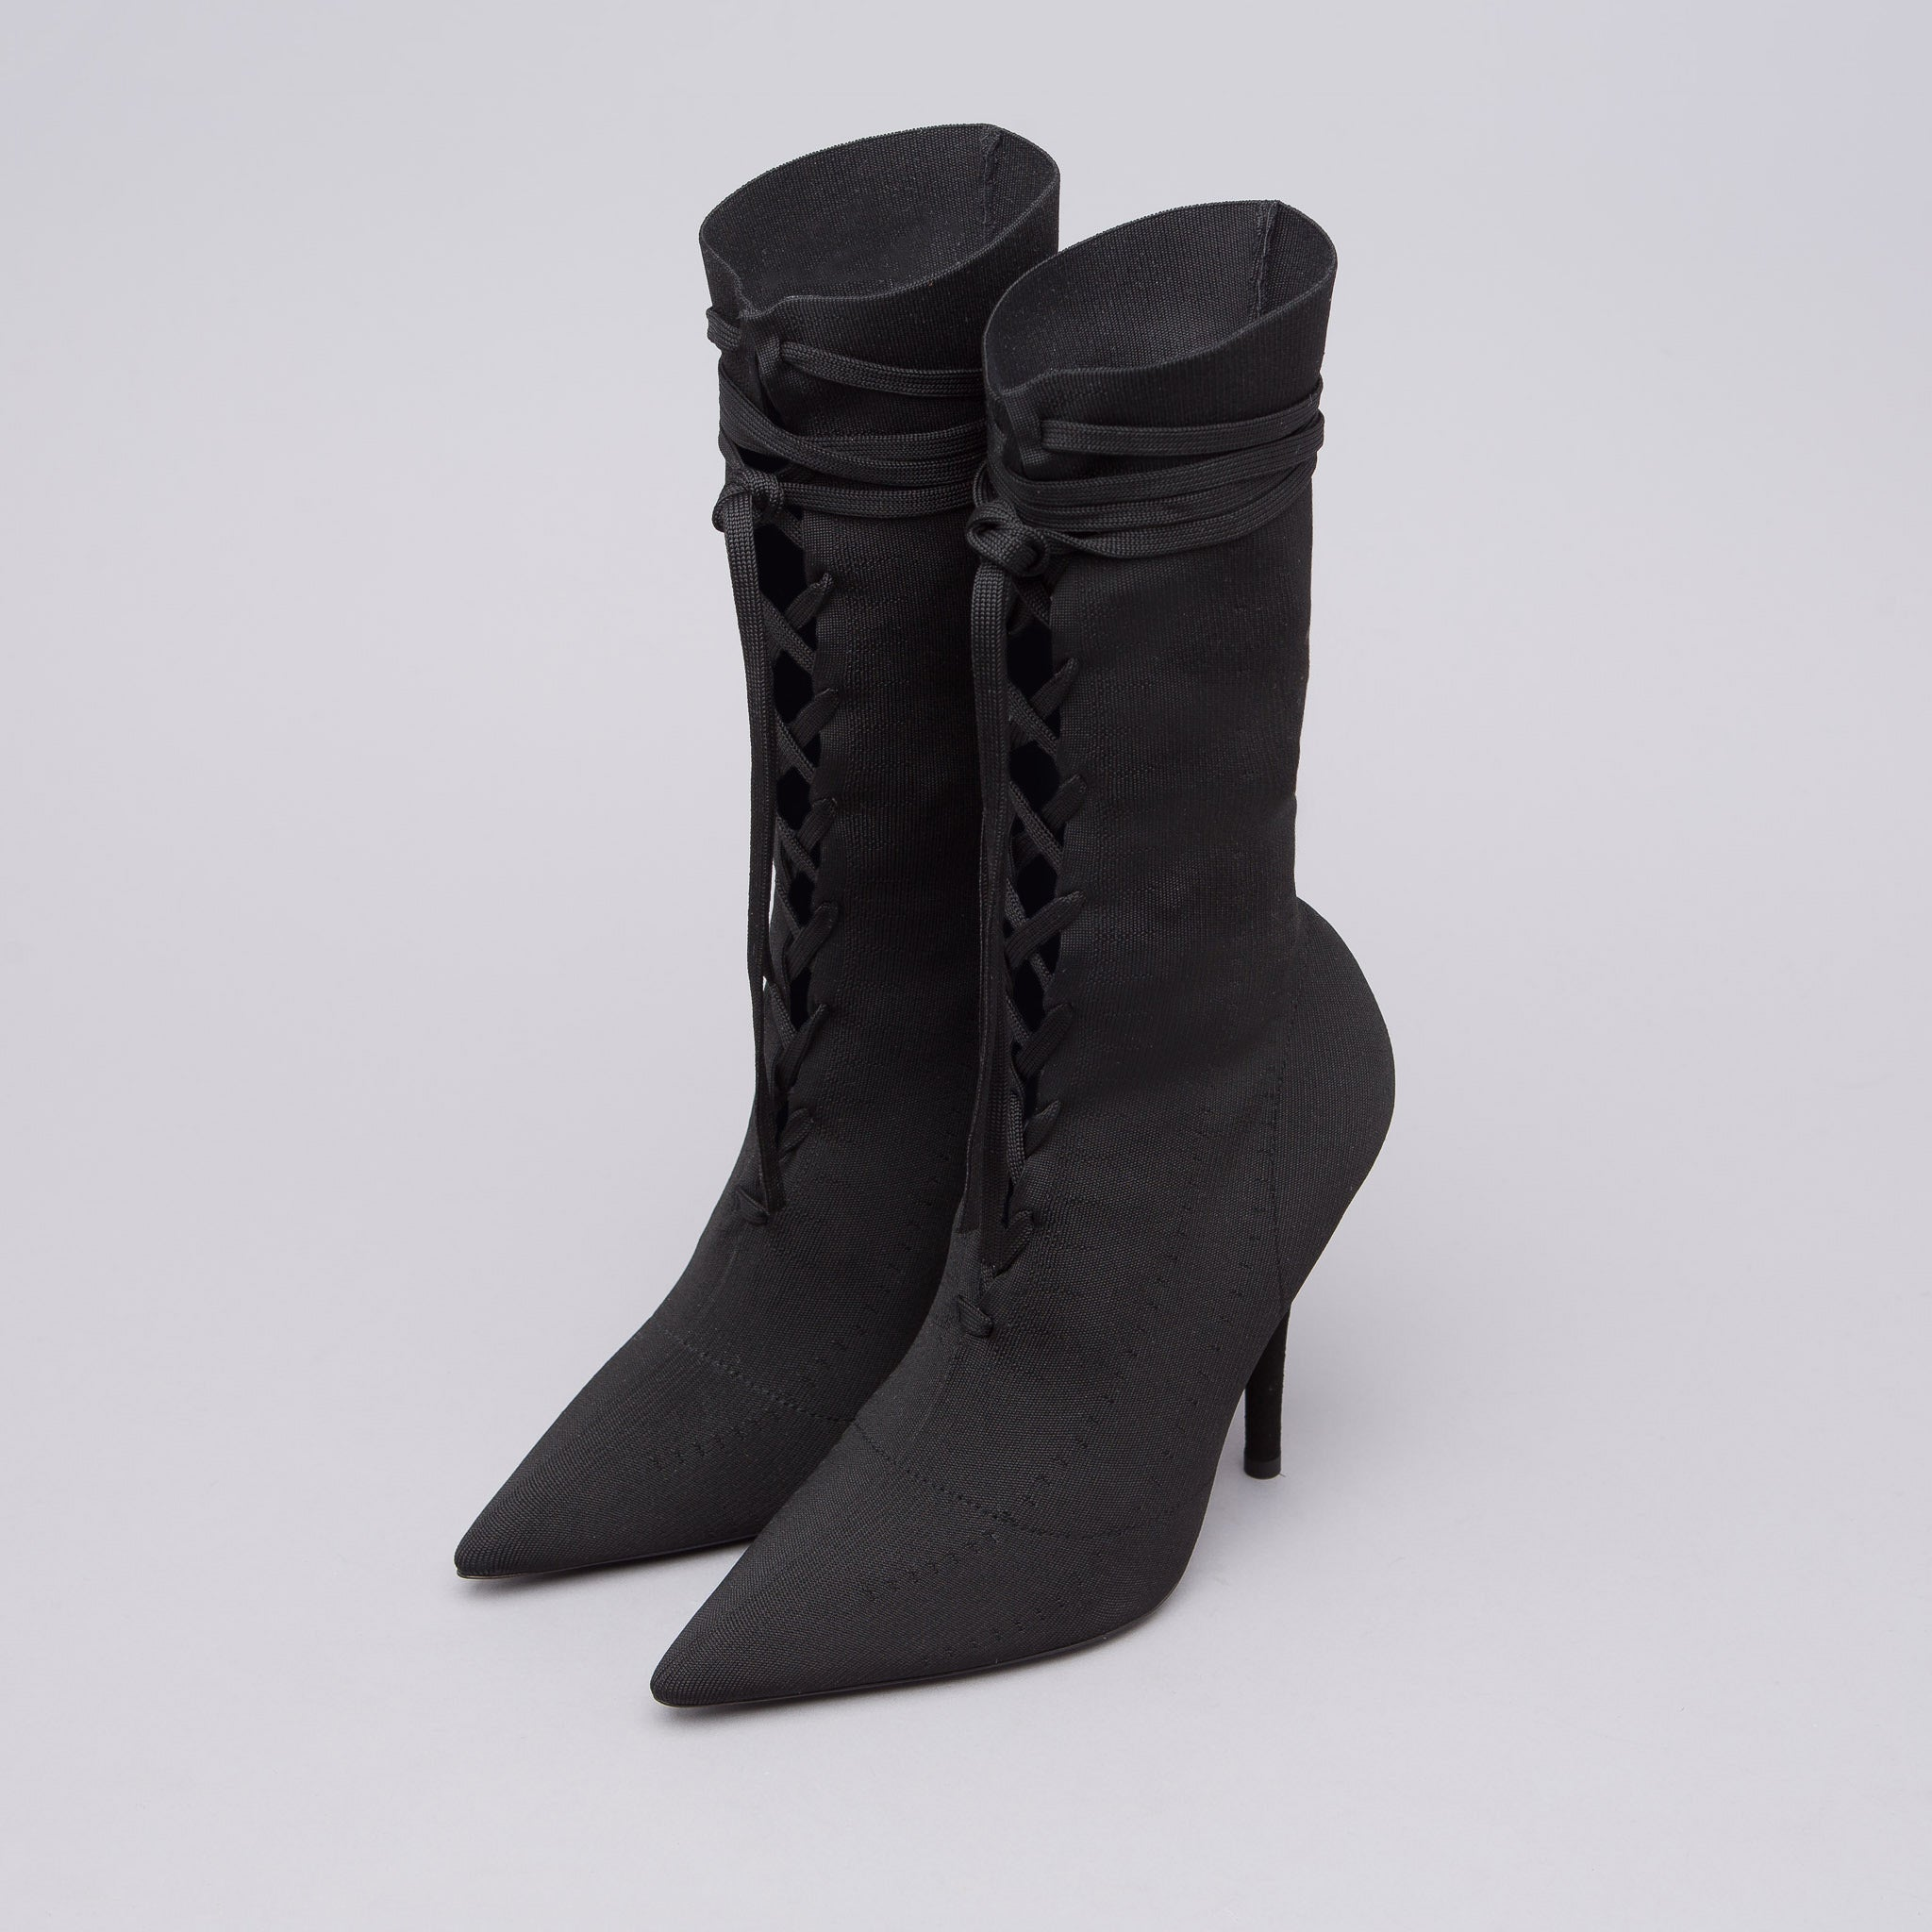 Women's Knit Lace Up Ankle Boot in Black